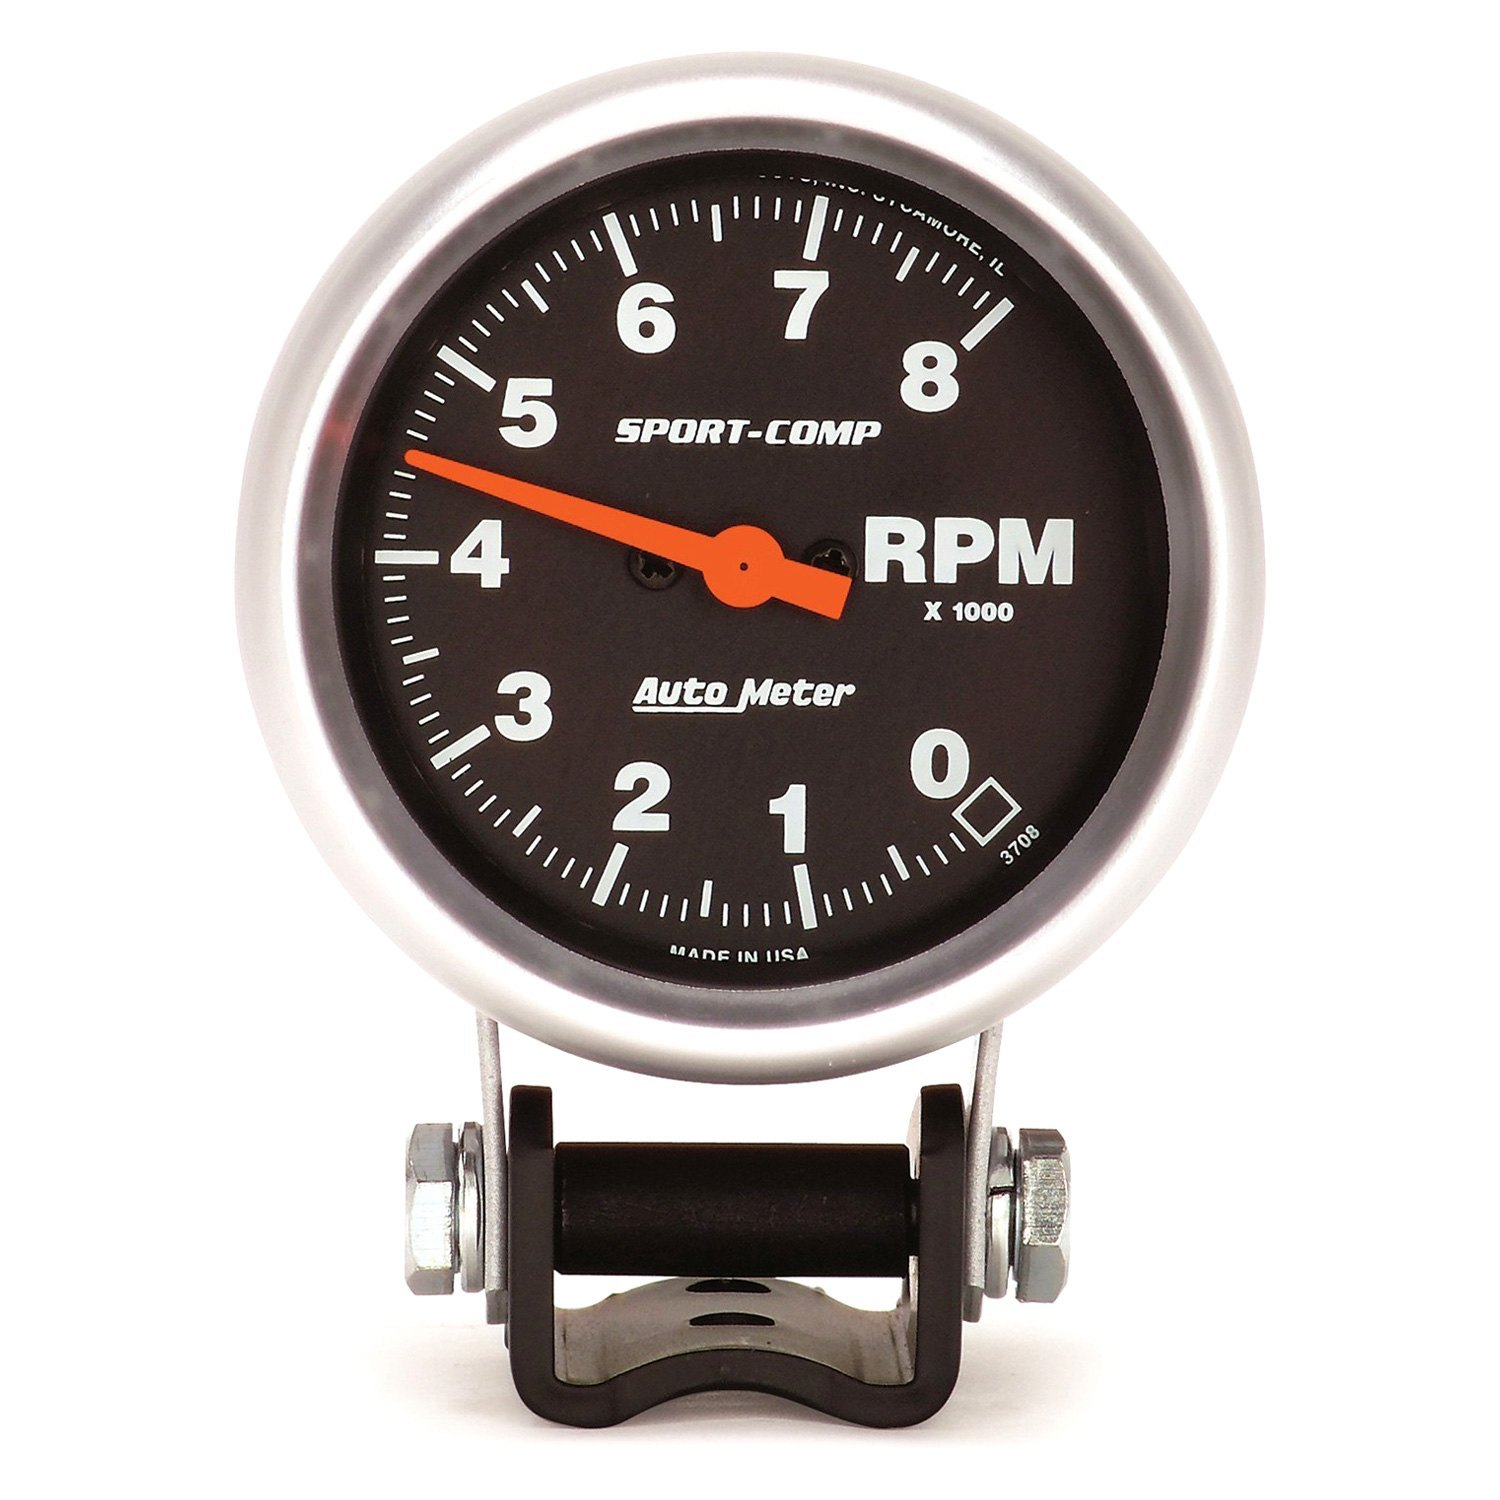 Wiring For Rpm Gauge Trusted Diagrams Equus 6088 Tach Diagram Auto Meter Sport Comp 2 Elsalvadorla